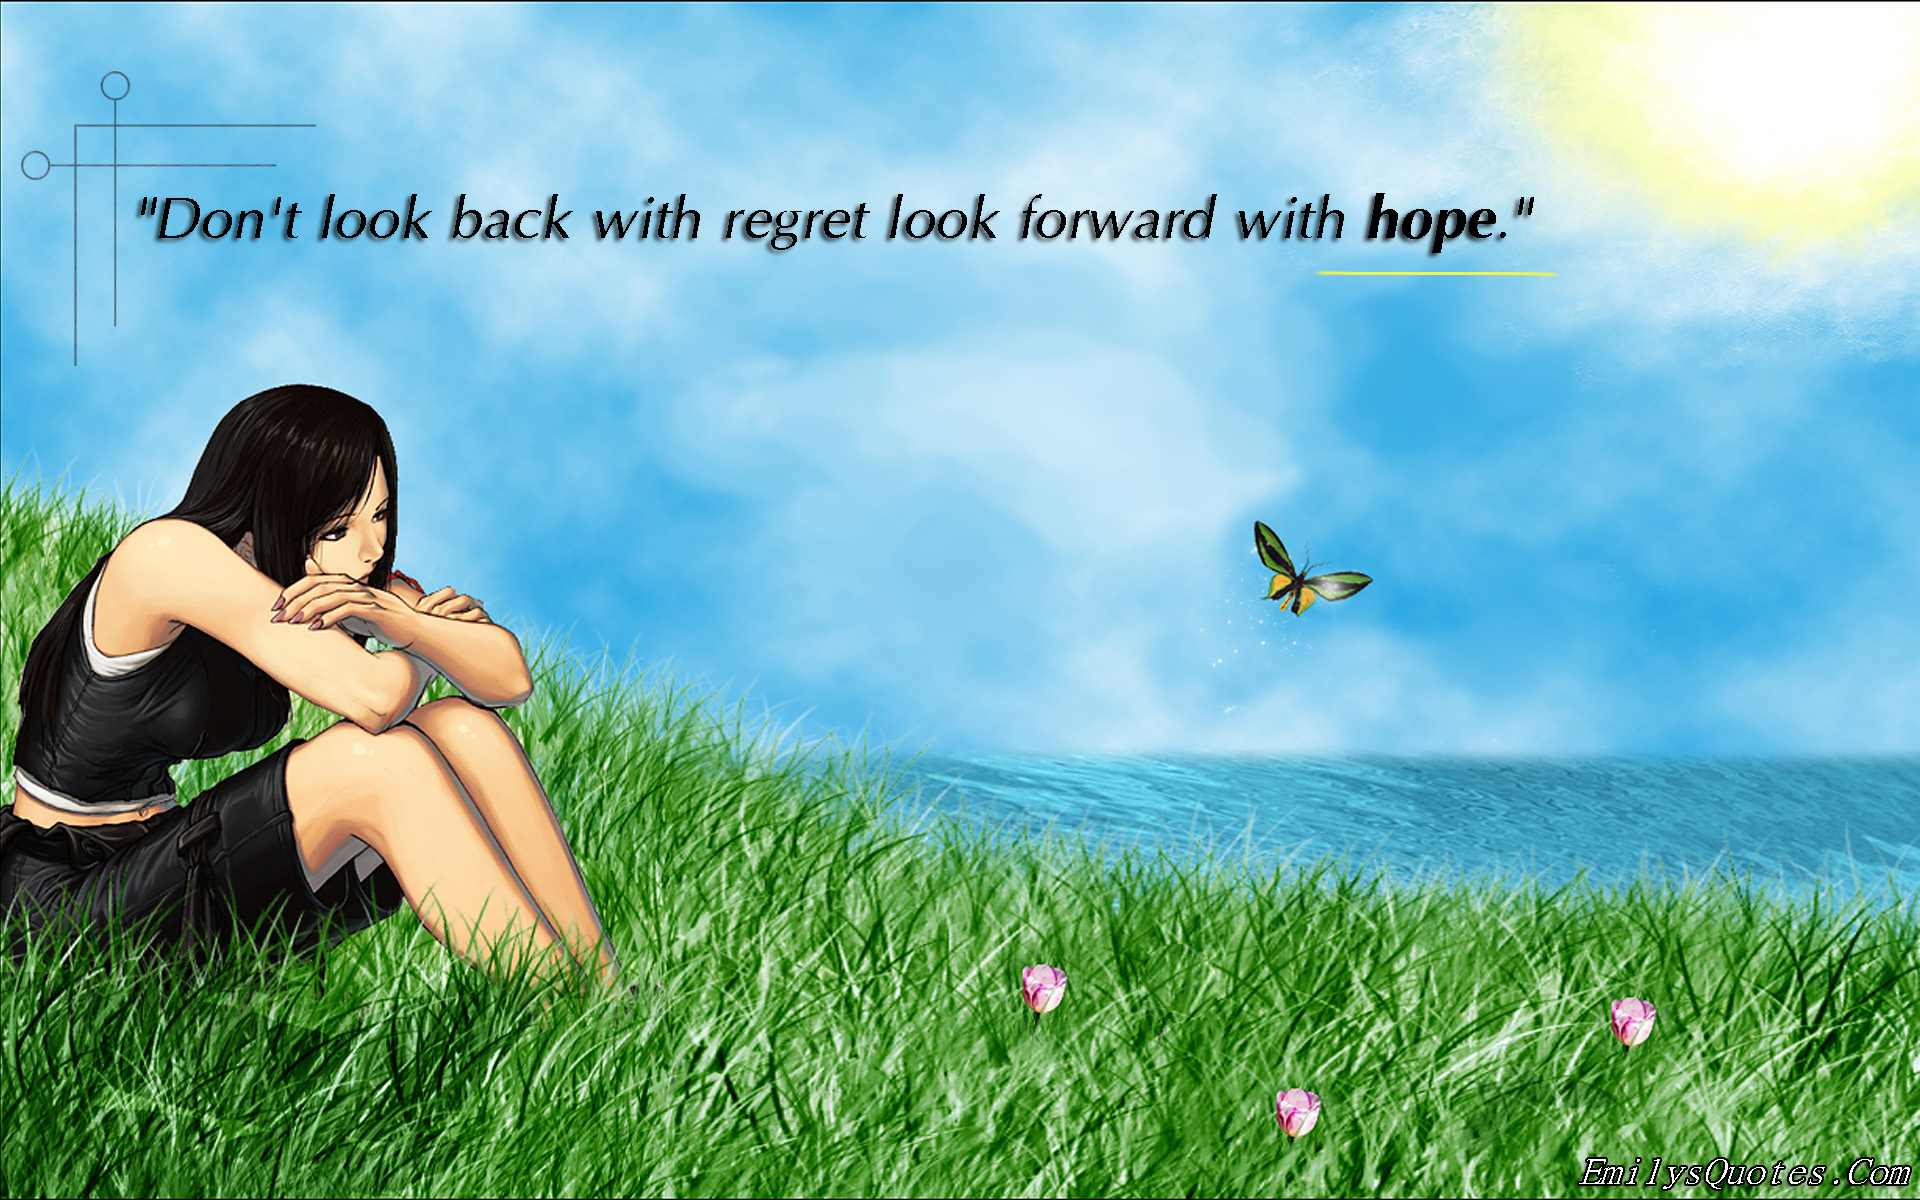 EmilysQuotes.Com - regret, hope, inspirational, choice, encouraging, unknown, positive